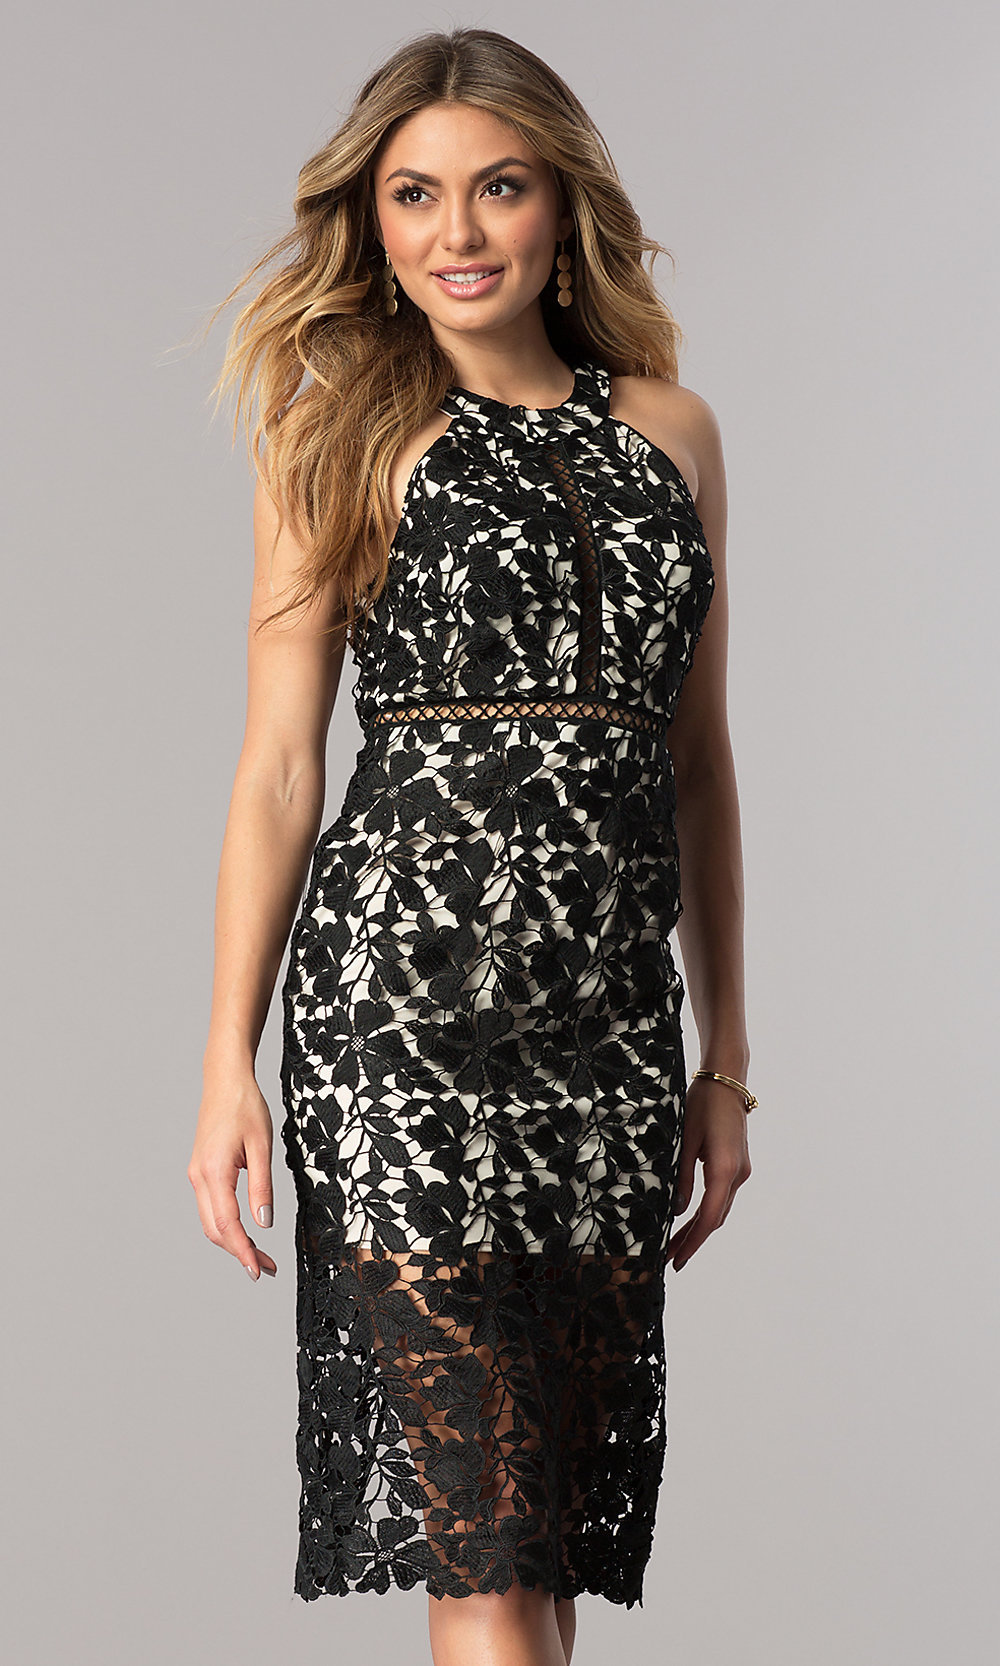 f148e8c3382 Black Lace Dress For Wedding Guest - The Best Wedding Picture In The ...